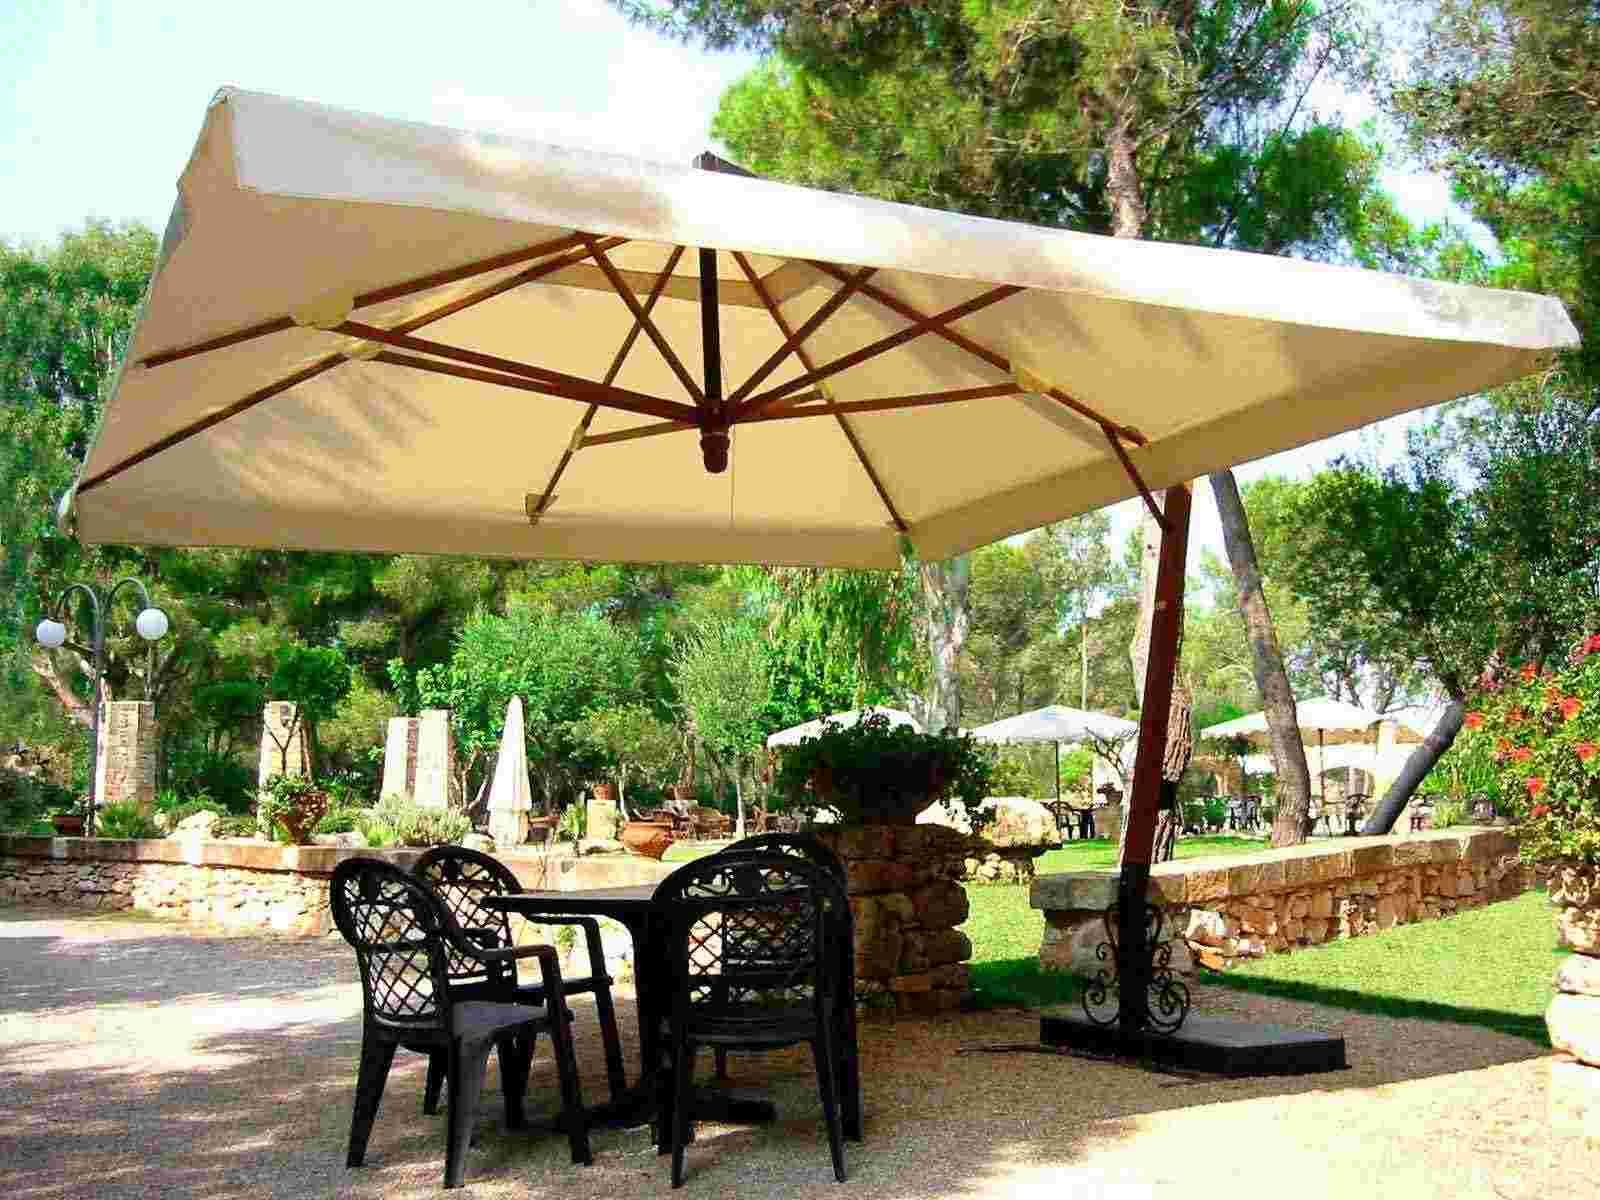 Bon Garden Shade Patio Set With Umbrella, Patio Table Umbrella, Outdoor Patio  Umbrellas, Deck